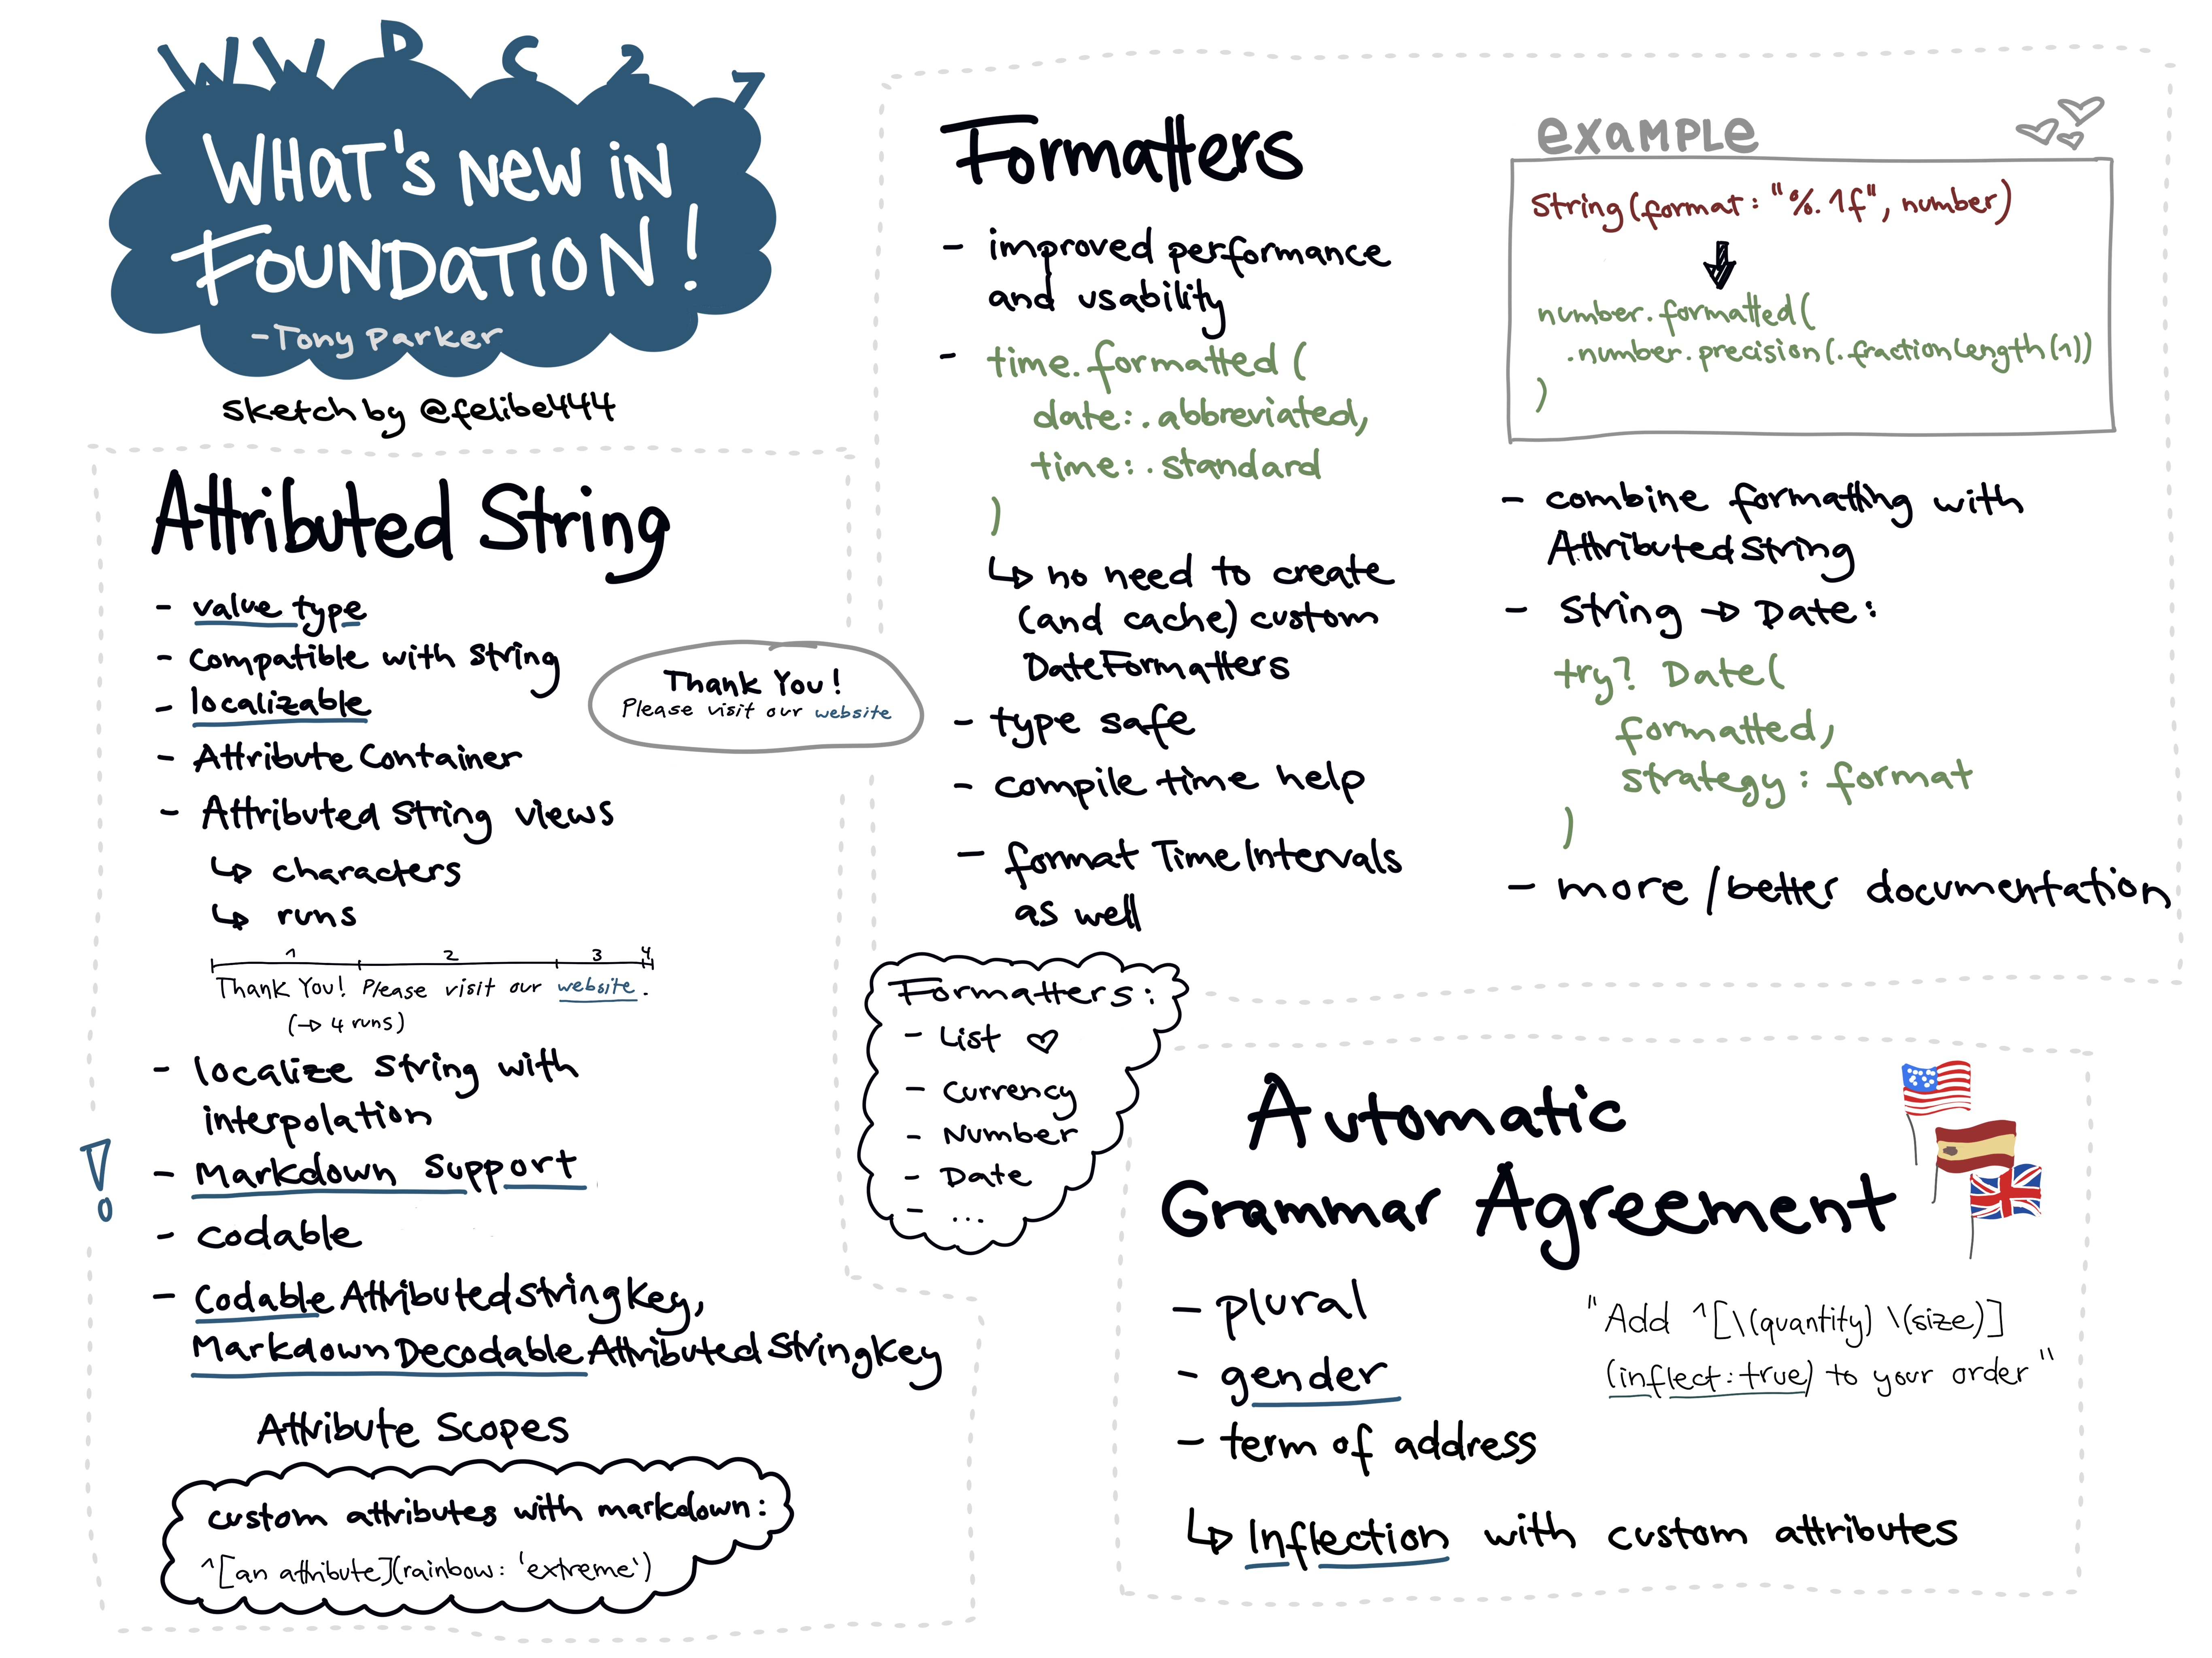 Sketchnote about what's new in Foundation at WWDC 2021. It shows news about internationalization and localization improvements, in detail Attributed String, Formatters and Automatic Grammar Agreement.